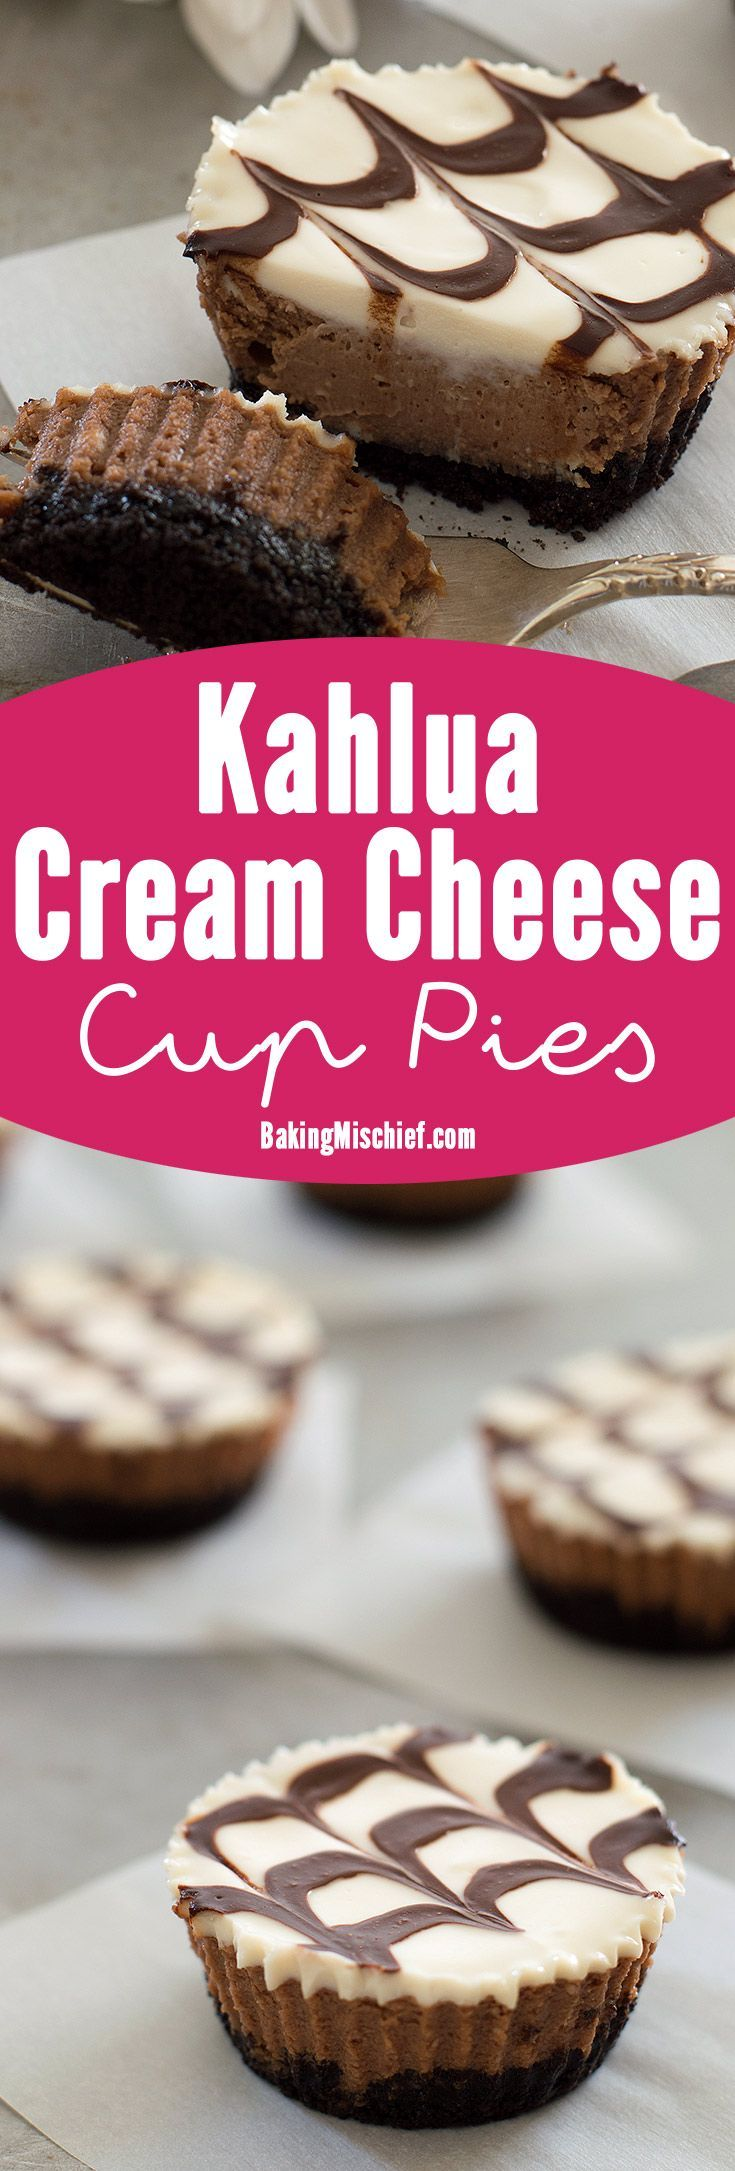 Mini mocha and Kahlua cheesecakes with a crunchy Oreo cookie base, cool sour cream topping, and fudge sauce. Recipe includes small-batch instructions and nutritional information. From http://BakingMischief.com